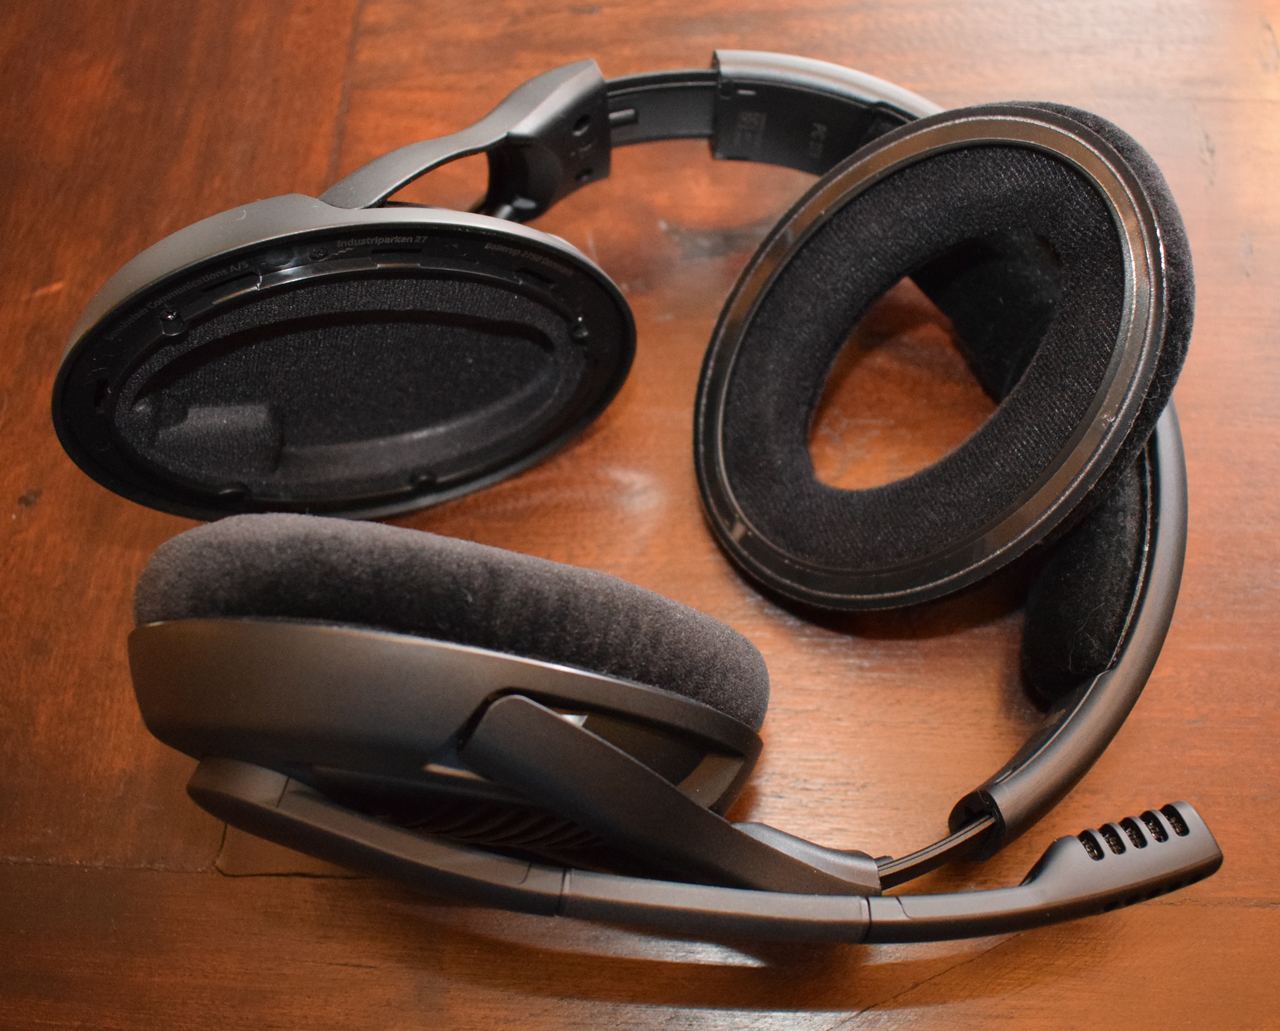 Massdrop x Sennheiser PC37X Gaming Headset Review Removable Ear Pads